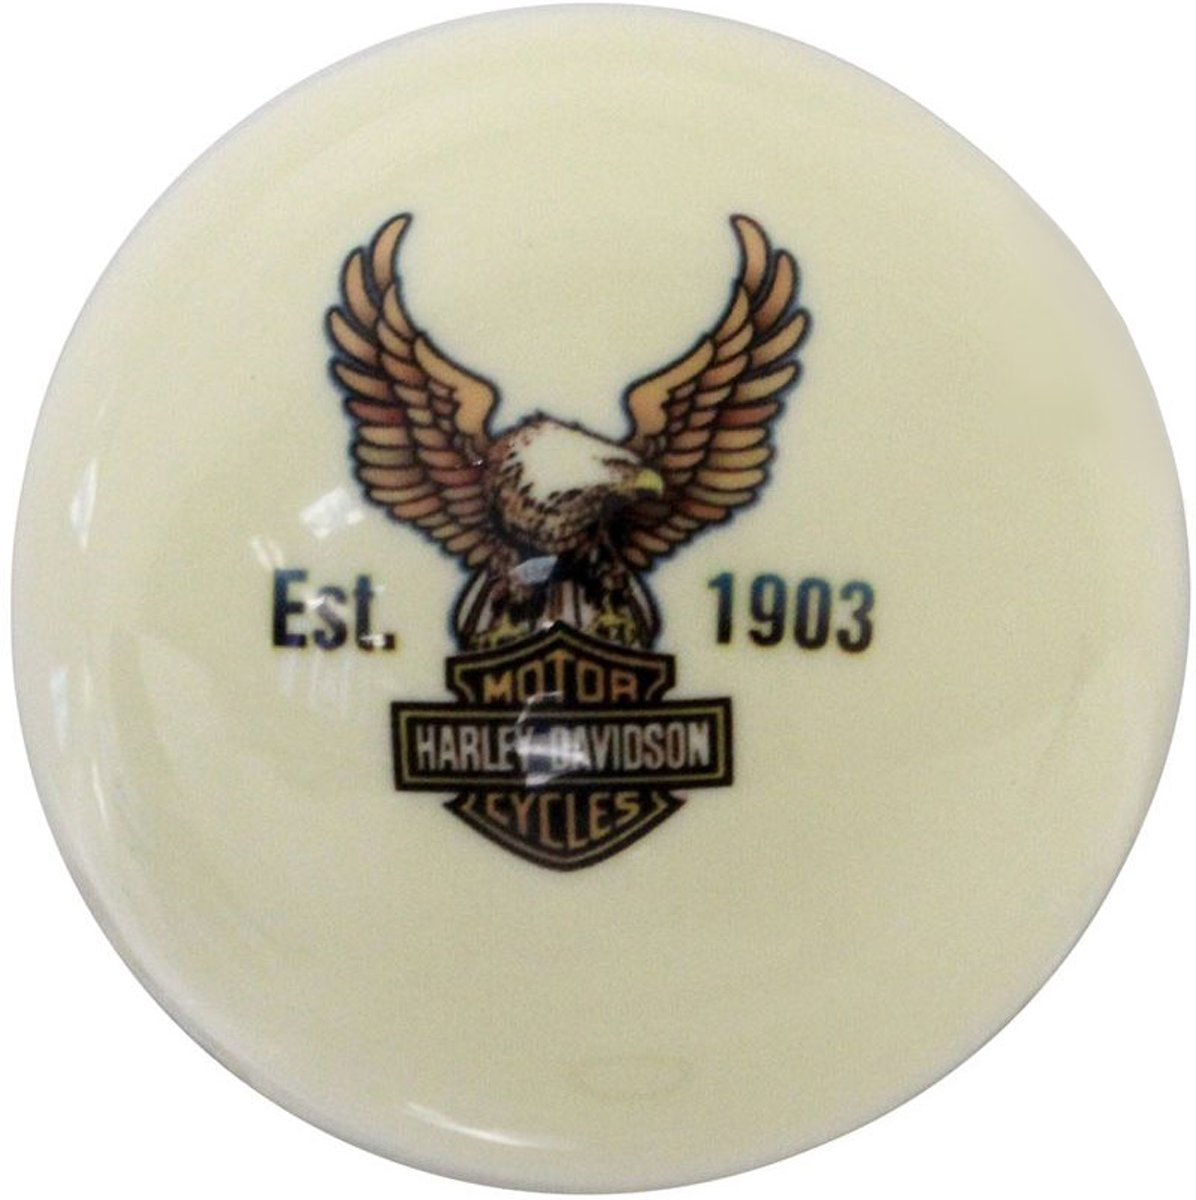 Harley-Davidson Bar & shield eagle cue ball kopen